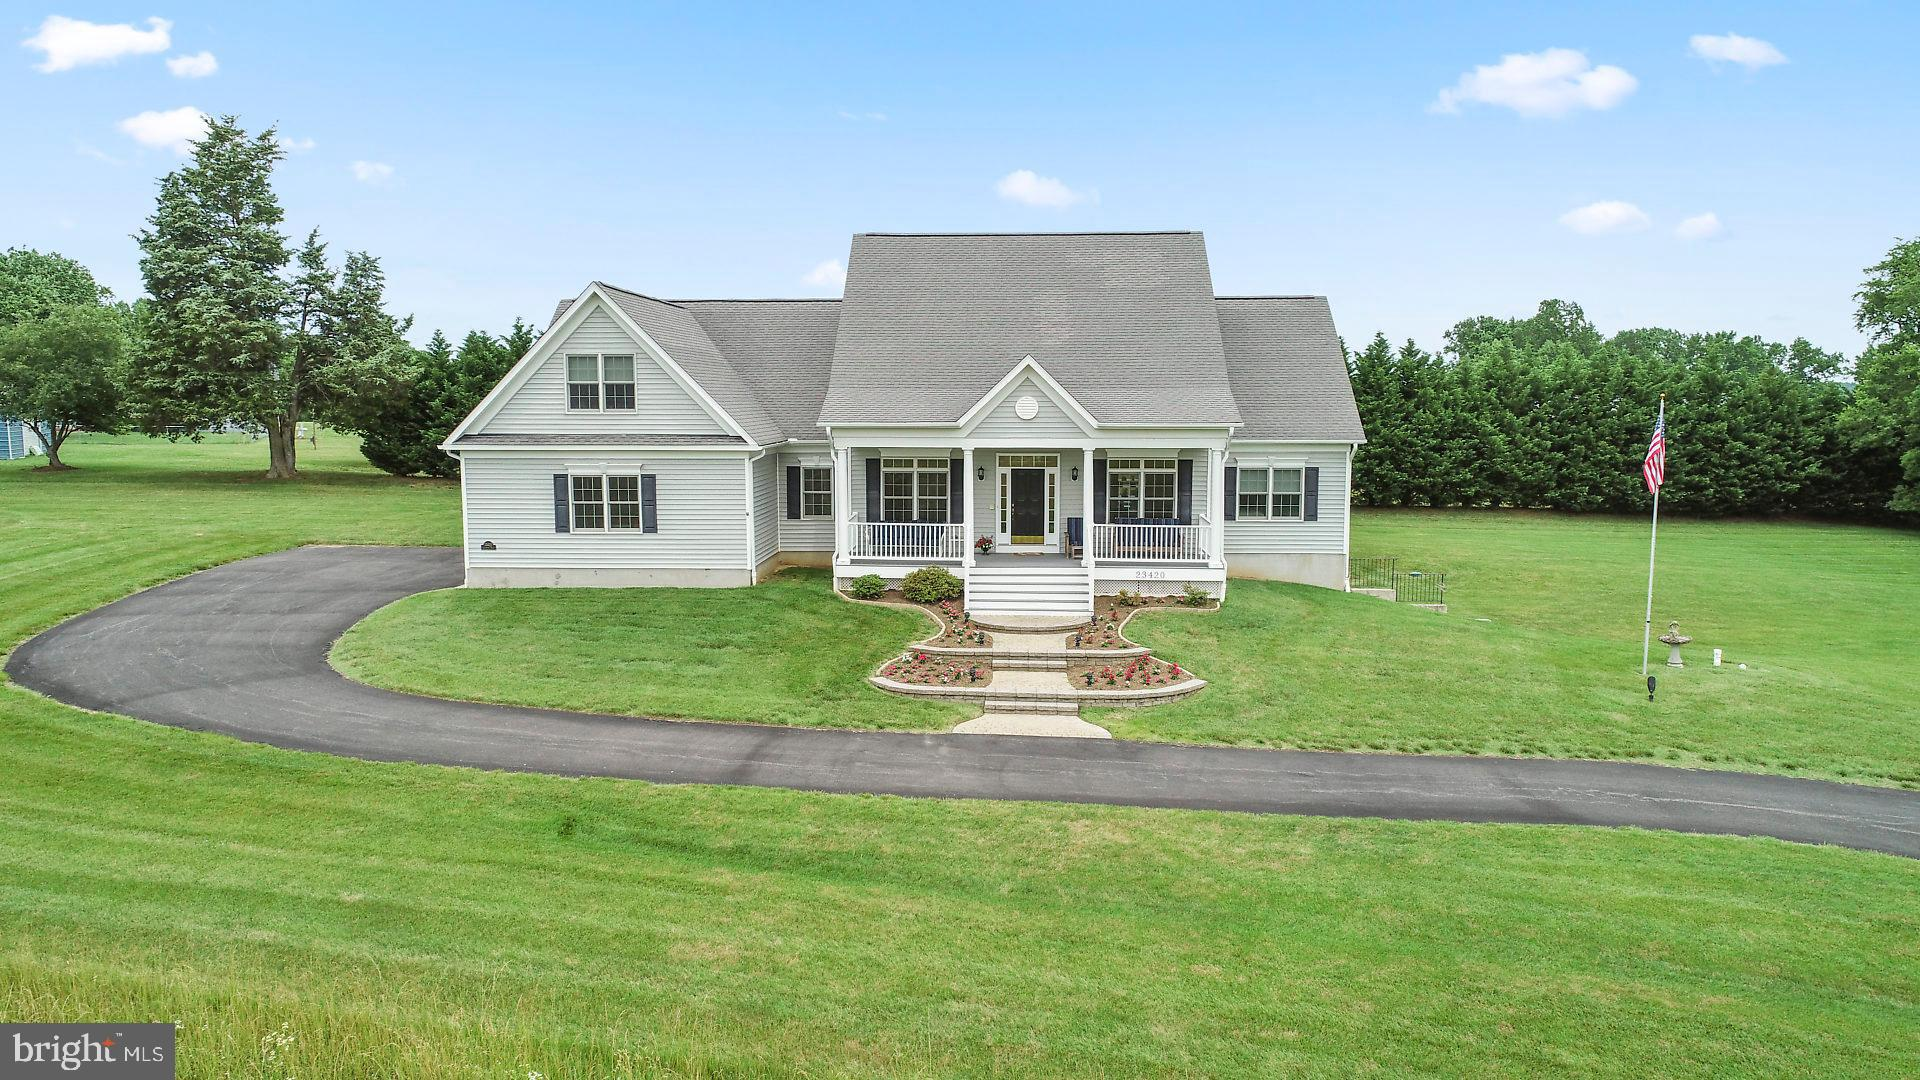 23420 GRAMPTON ROAD, CLEMENTS, MD 20624